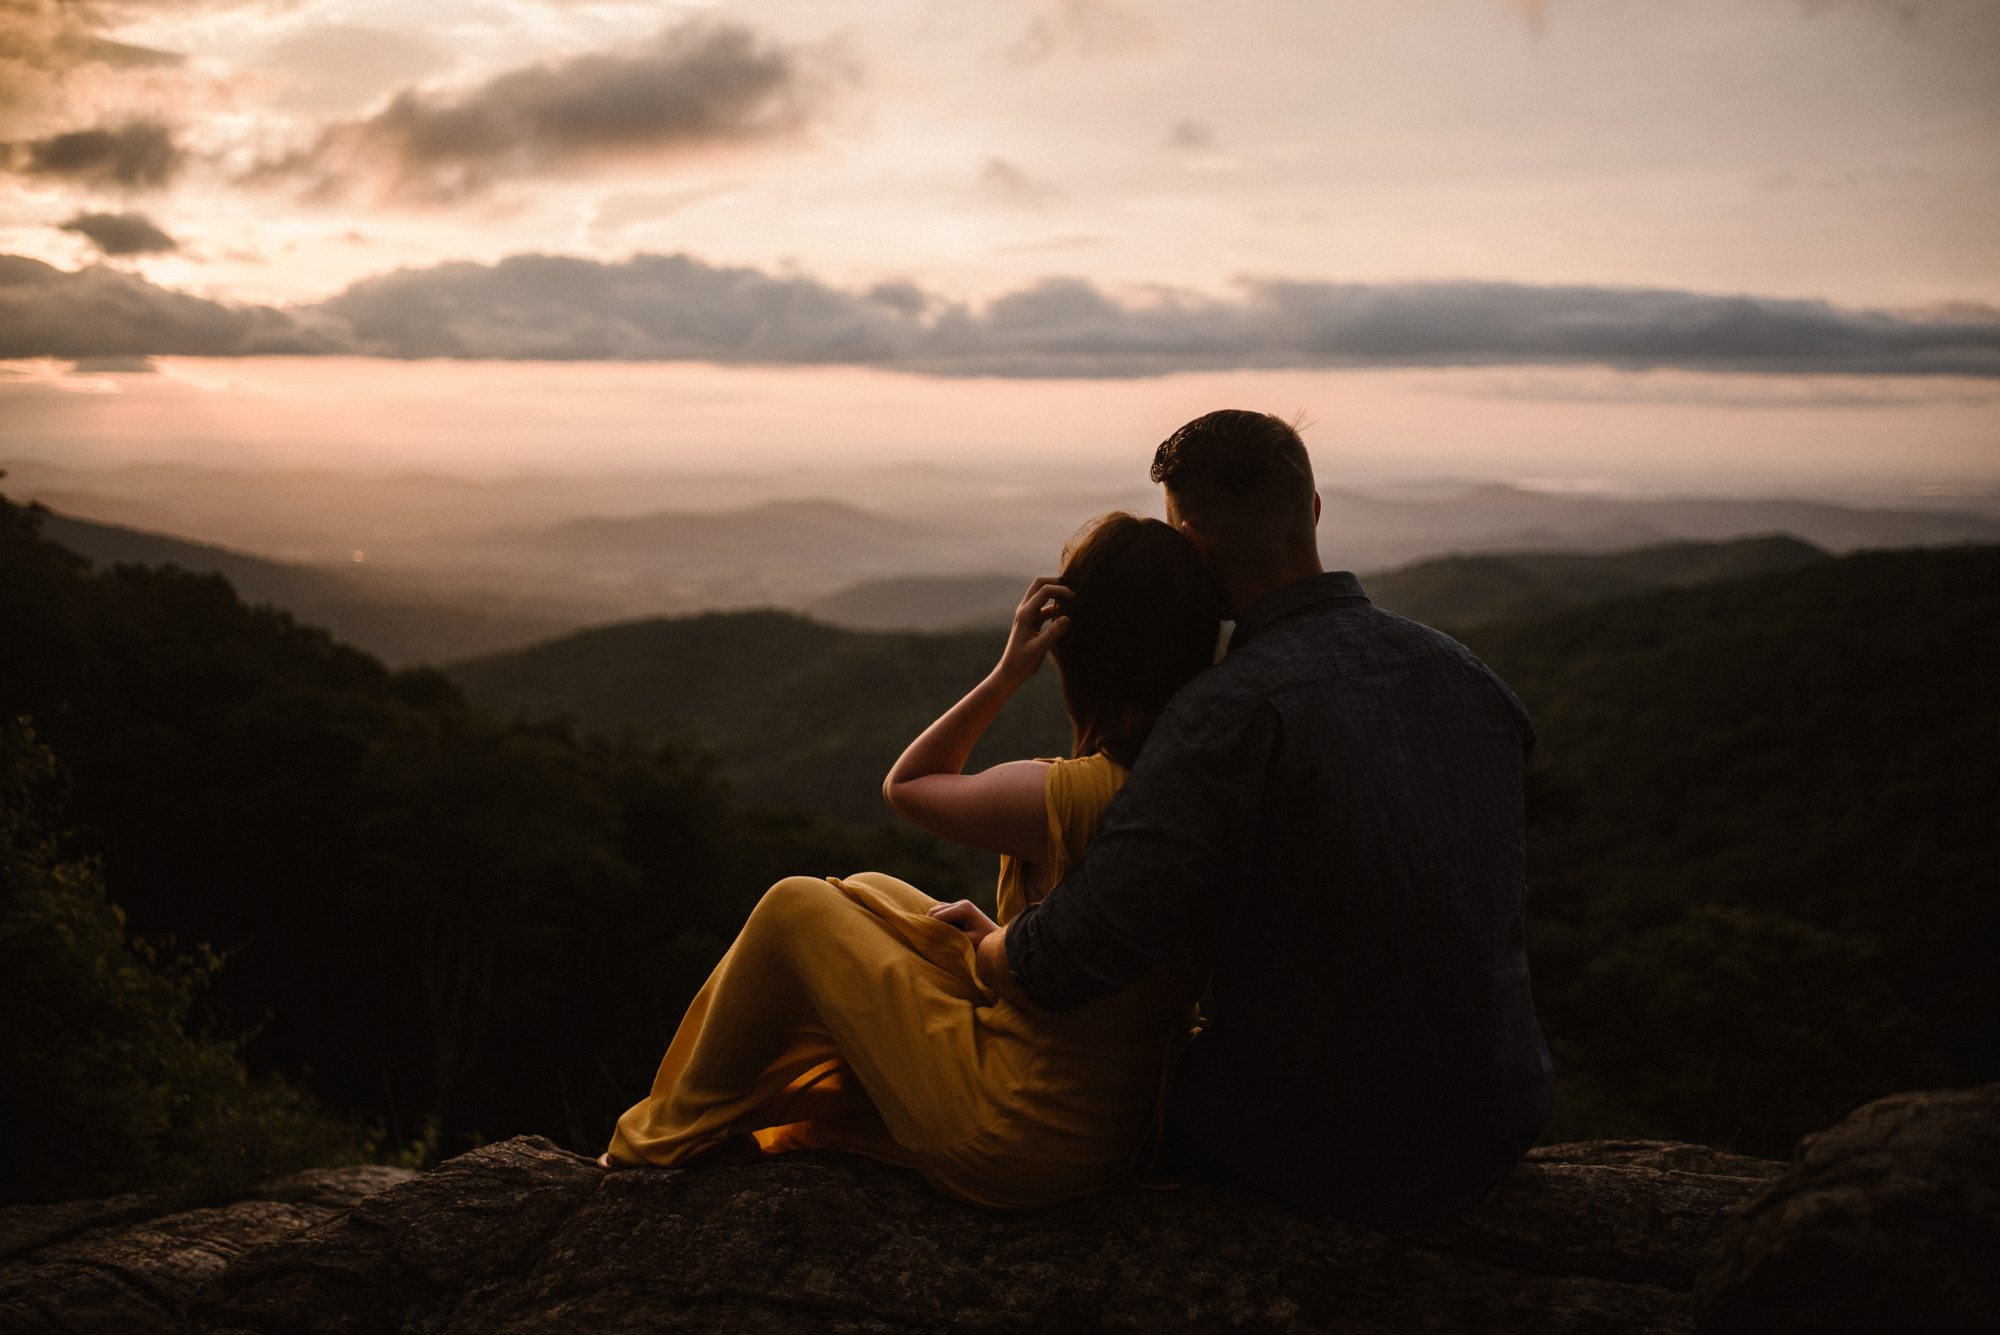 Camryn and Larry Sunrise Engagement Session in Shenandoah National Park - Things to Do in Luray Virginia - Adventurous Couple Photo Shoot White Sails Creative_7.jpg